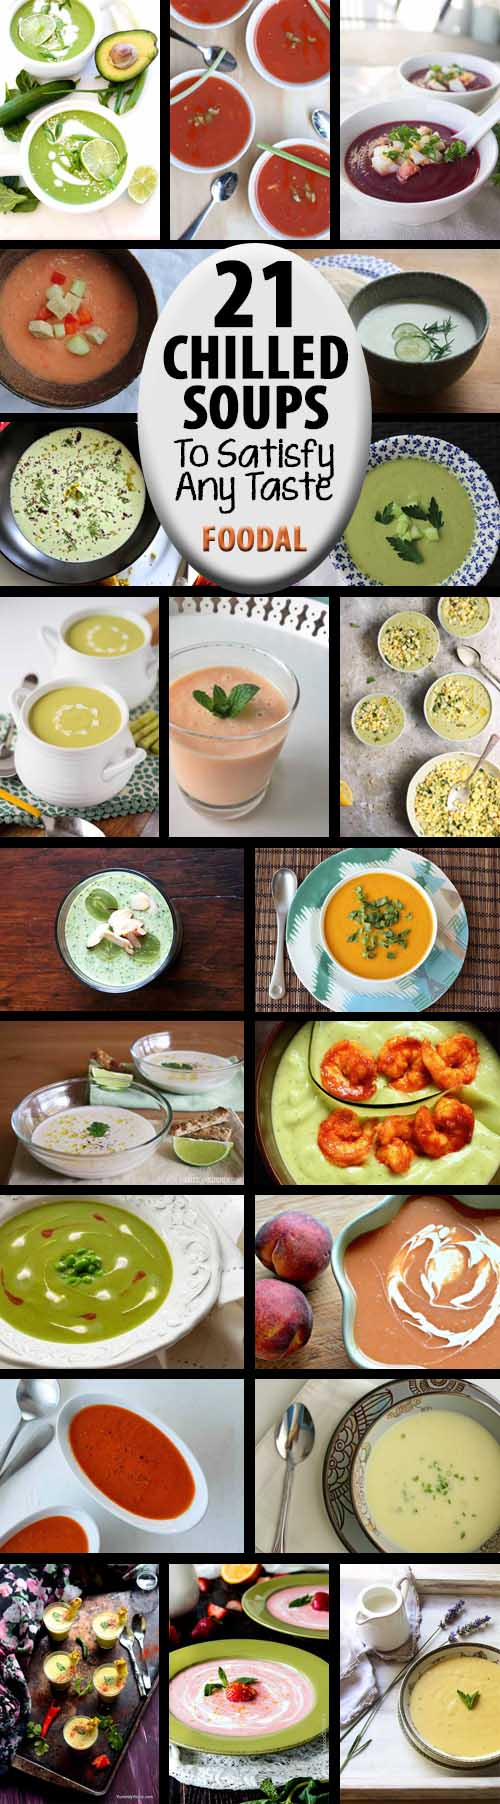 Whether sweet or savory, made with fruit, vegetables, fresh herbs, nuts, or legumes, there's a chilled soup recipe out there to satisfy every taste. We've collected 21 of our favorites from around the web, and brought them together in Foodal's roundup of the top taste sensations in a variety of categories. Whether your goal is to beat the heat or to serve up something a little different at your next dinner party, we've got you covered. Read more and get the recipes now: https://foodal.com/knowledge/paleo/chilled-soups-roundup